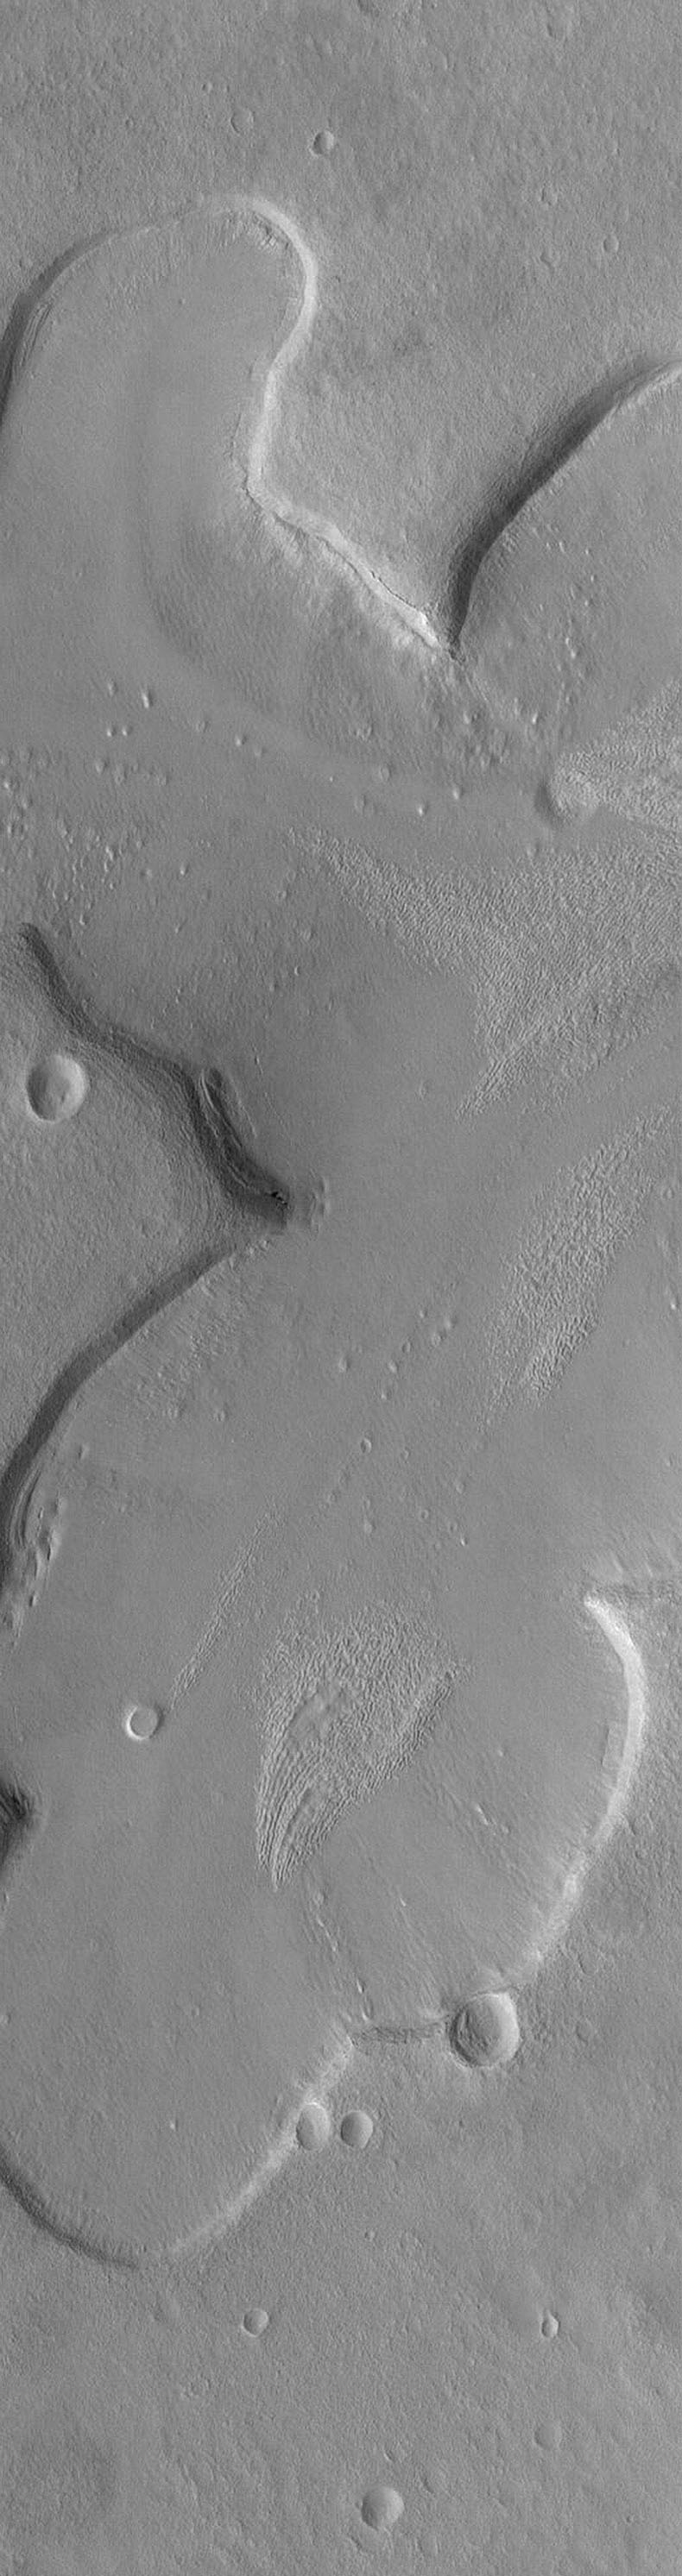 NASA's Mars Global Surveyor shows shallow tributary valleys in the Ismenius Lacus fretted terrain region of Mars. These valleys exhibit a variety of typical fretted terrain valley wall and floor textures, and a lineated, pitted material.